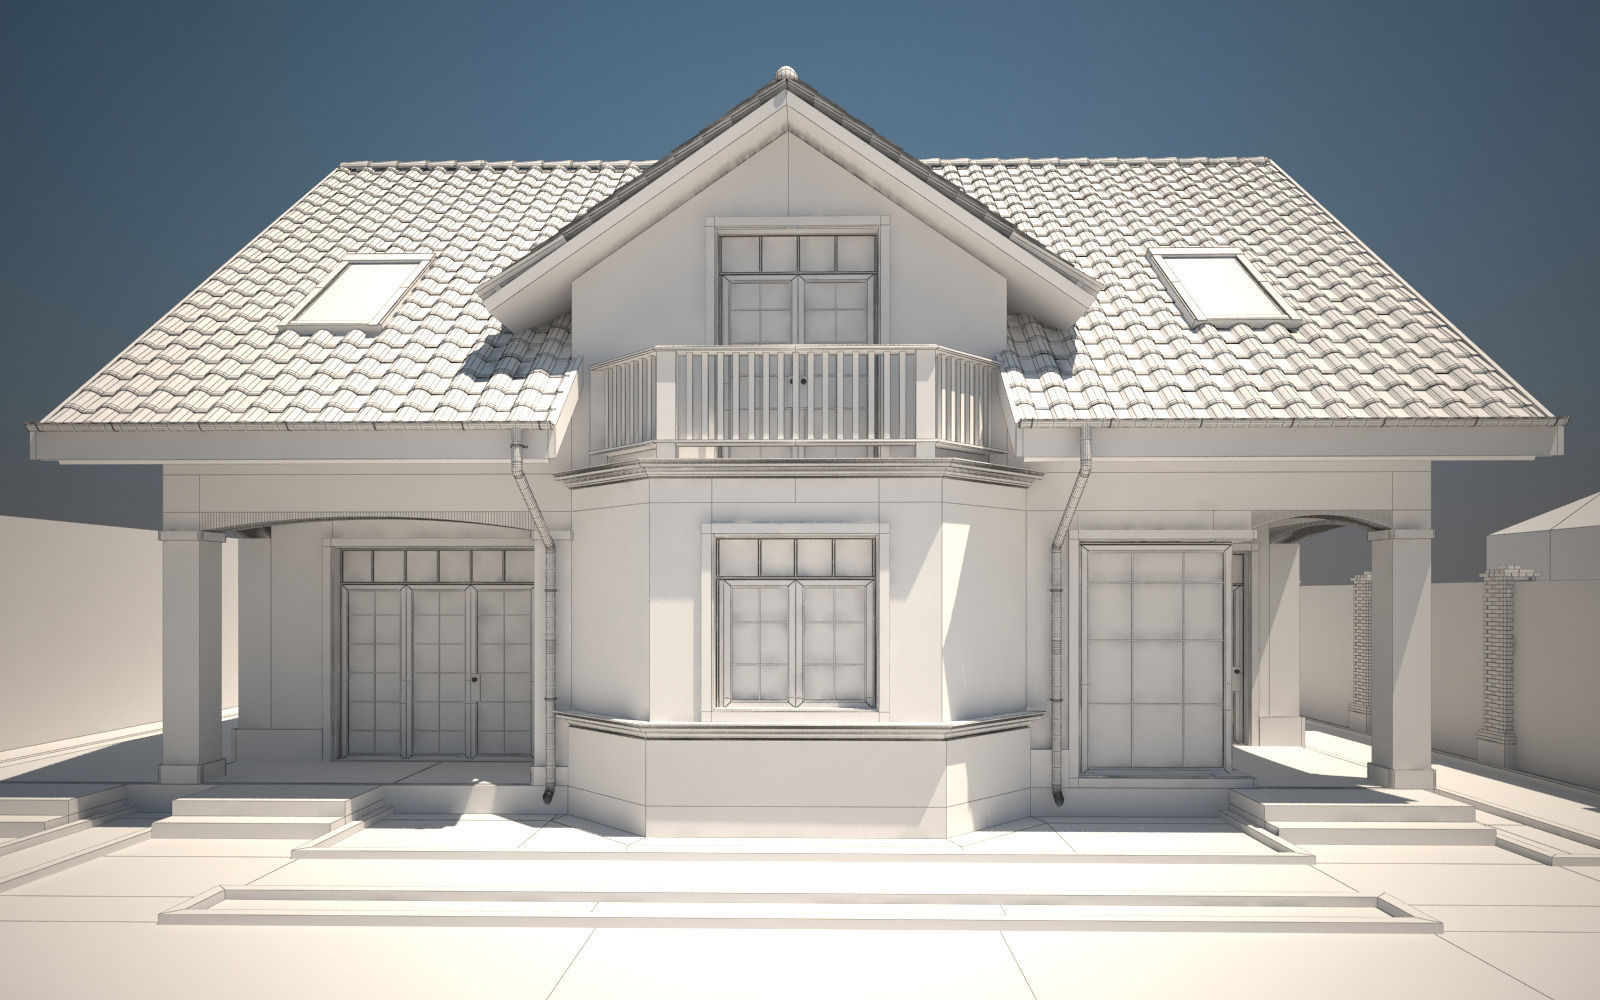 3ds max house modeling